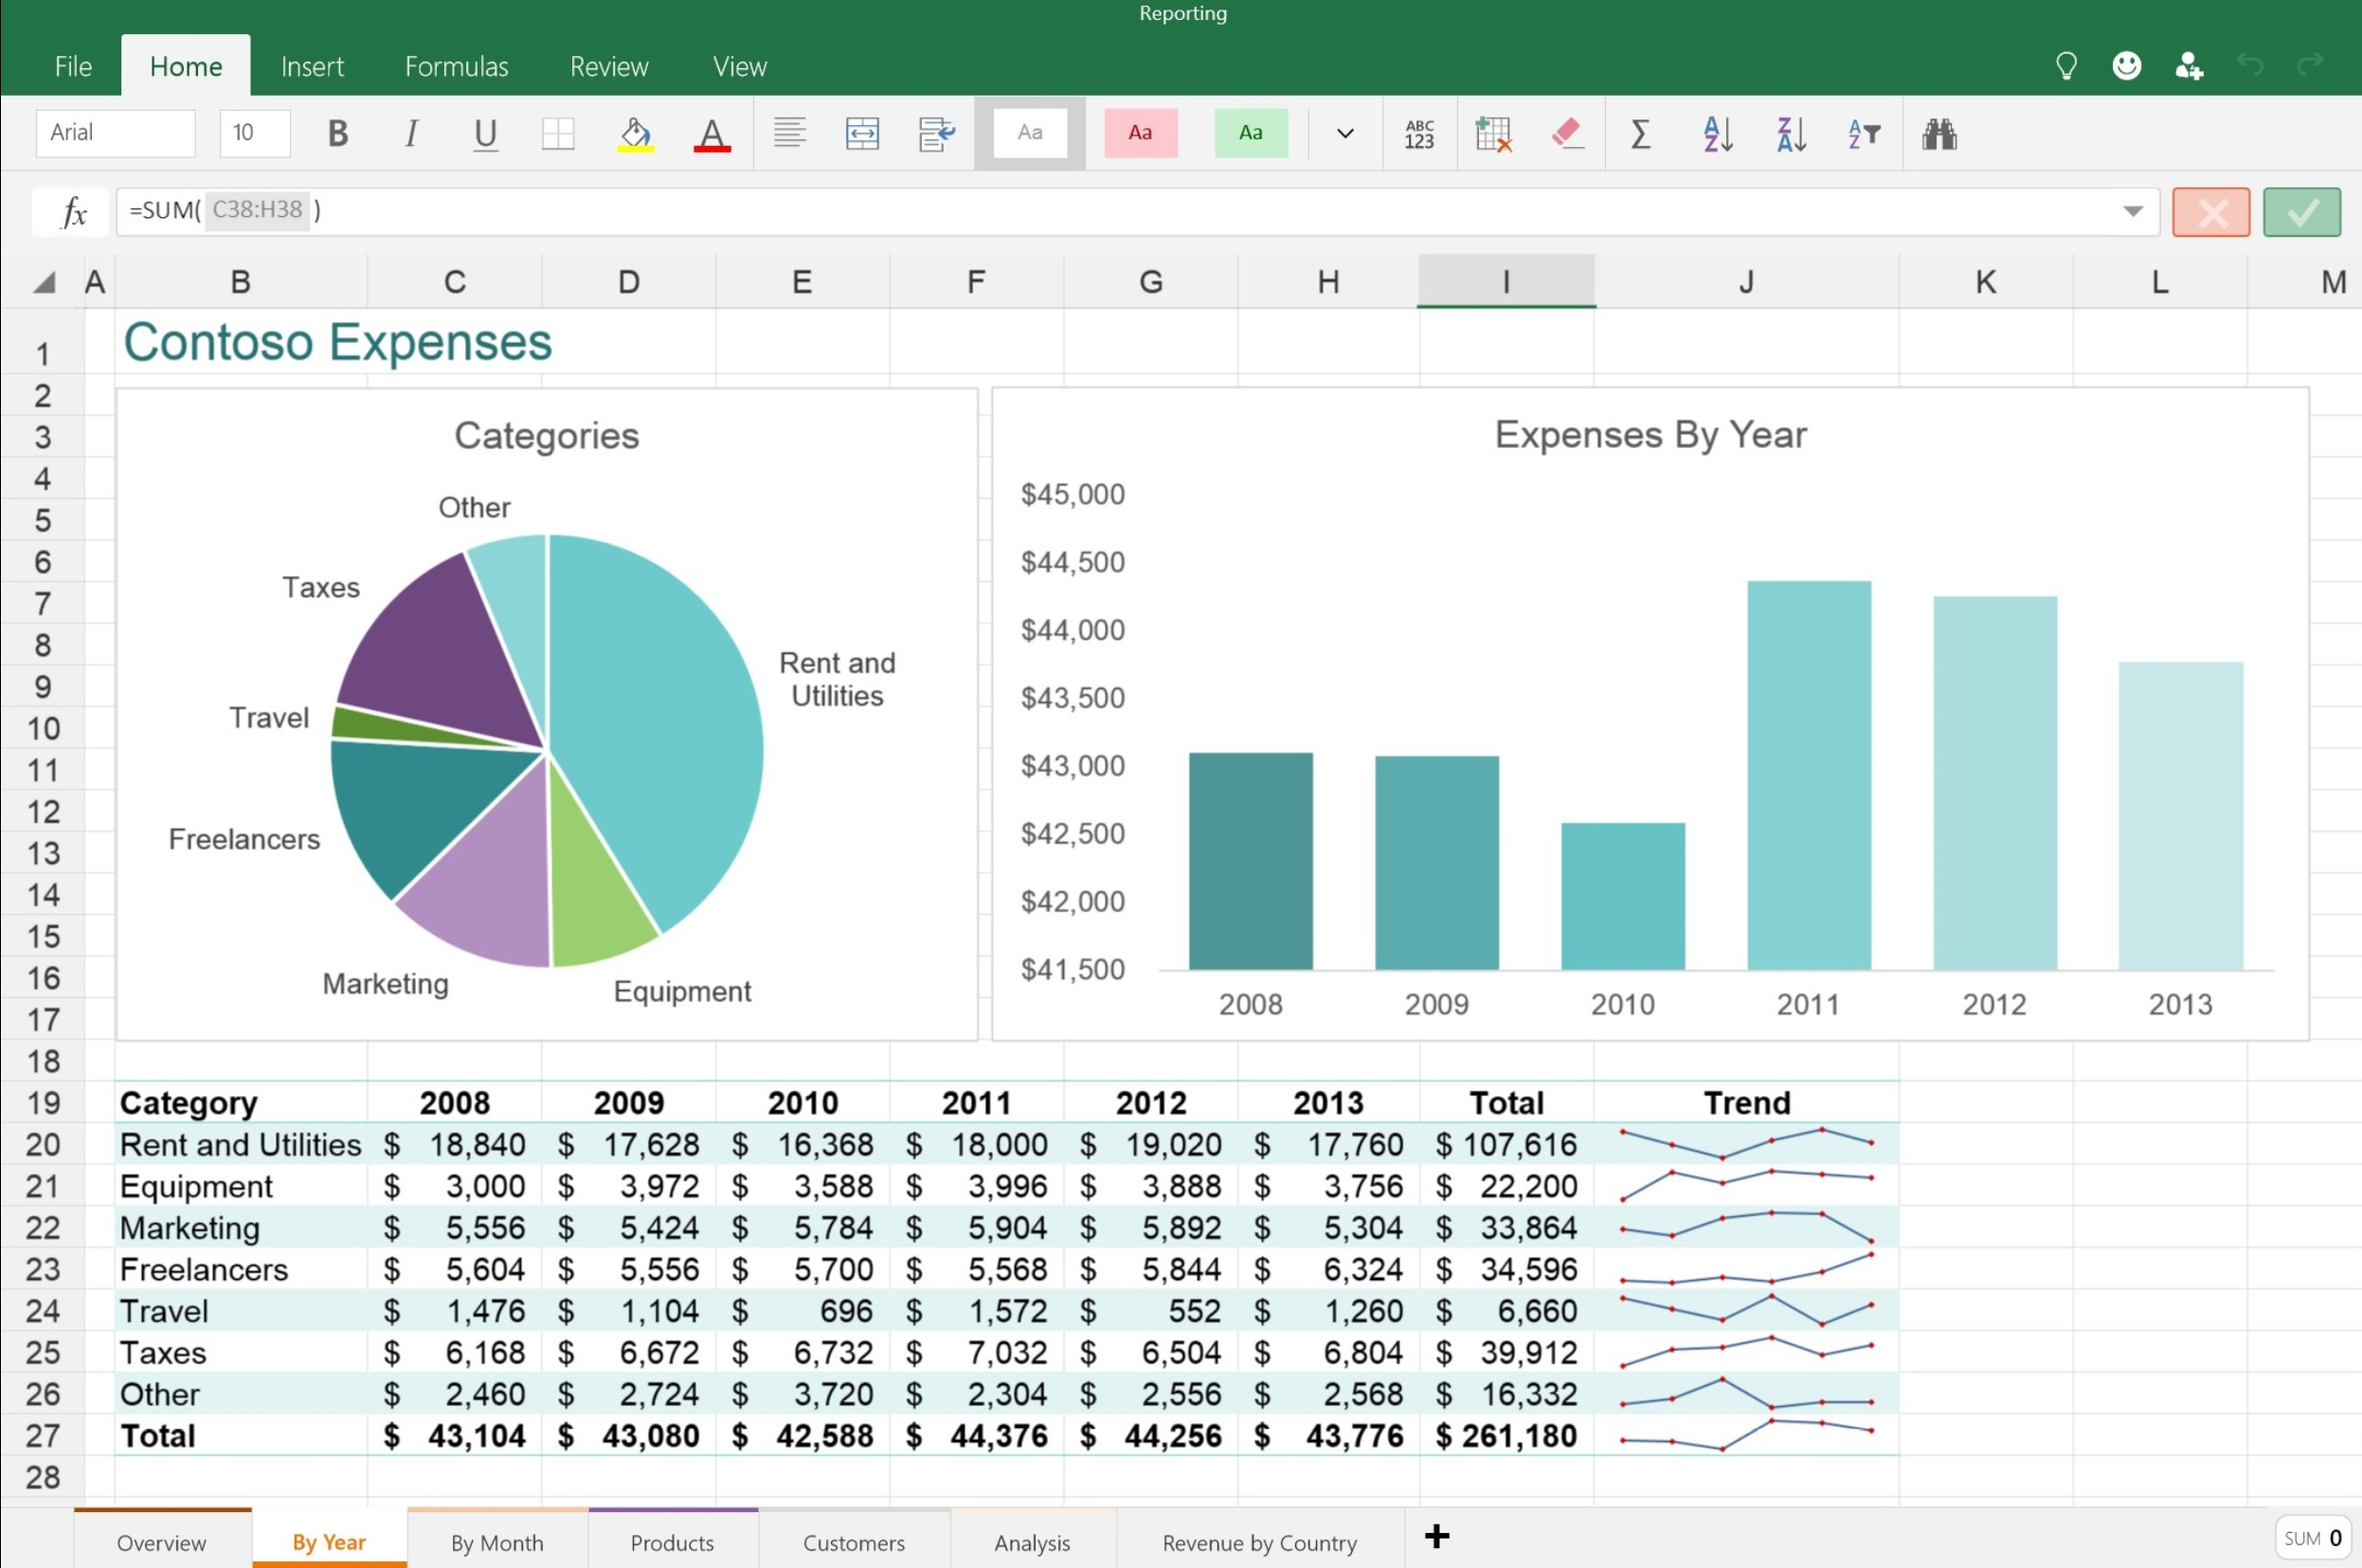 Ediblewildsus  Outstanding Features Available In The New Word Excel And Powerpoint Apps For  With Excellent Excel Touch App  With Awesome Free Gantt Chart Excel Also How To Create A Bell Curve In Excel In Addition Add Hours In Excel And Unprotect Excel Workbook Without Password As Well As Excel  Bit Additionally Accounting Format Excel From Mspowerusercom With Ediblewildsus  Excellent Features Available In The New Word Excel And Powerpoint Apps For  With Awesome Excel Touch App  And Outstanding Free Gantt Chart Excel Also How To Create A Bell Curve In Excel In Addition Add Hours In Excel From Mspowerusercom